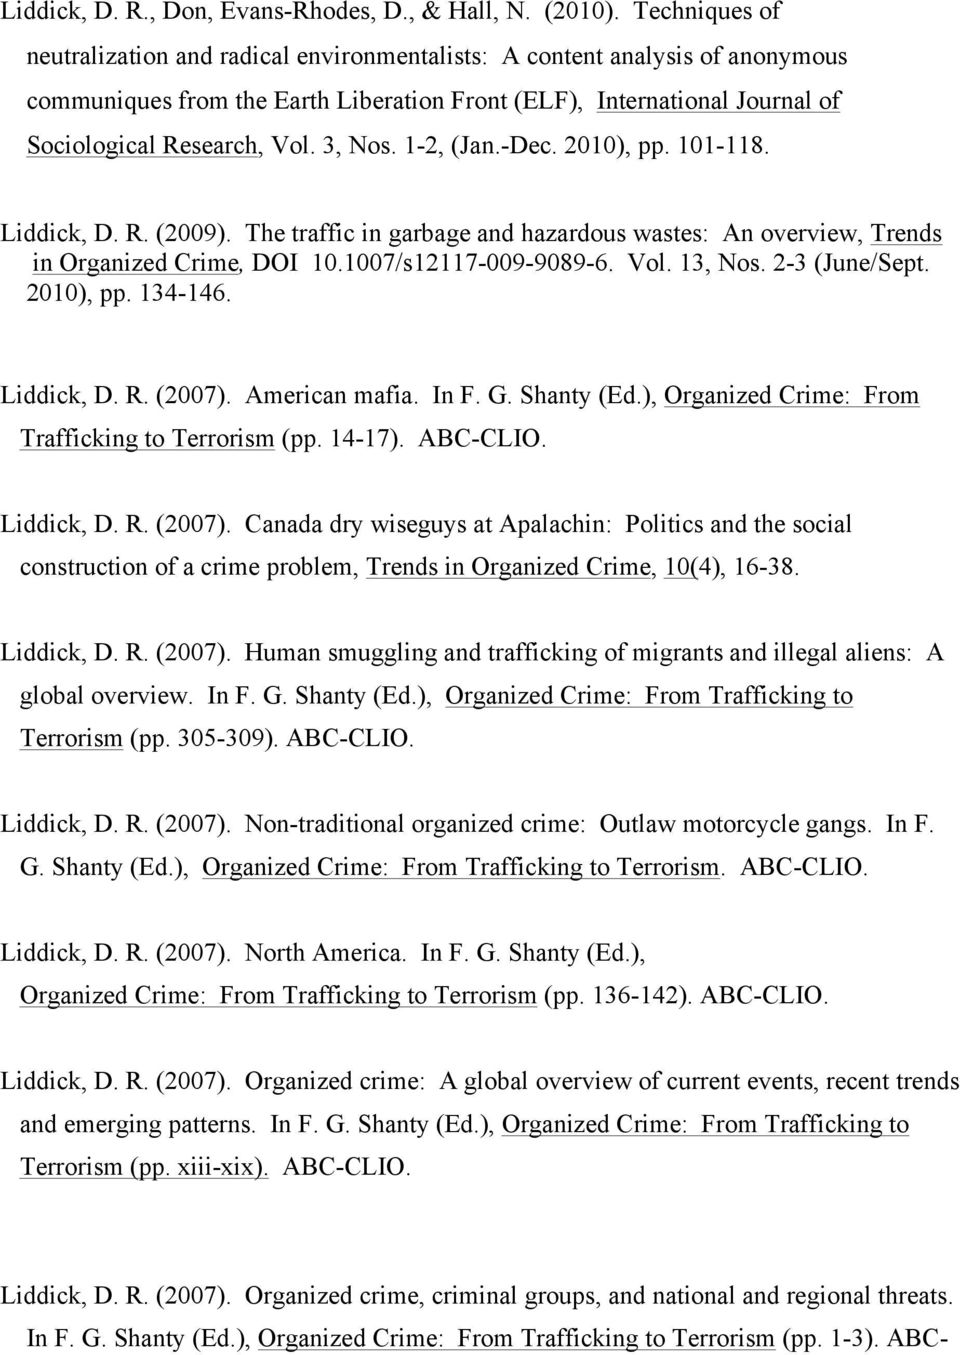 3, Nos. 1-2, (Jan.-Dec. 2010), pp. 101-118. Liddick, D. R. (2009). The traffic in garbage and hazardous wastes: An overview, Trends in Organized Crime, DOI 10.1007/s12117-009-9089-6. Vol. 13, Nos.